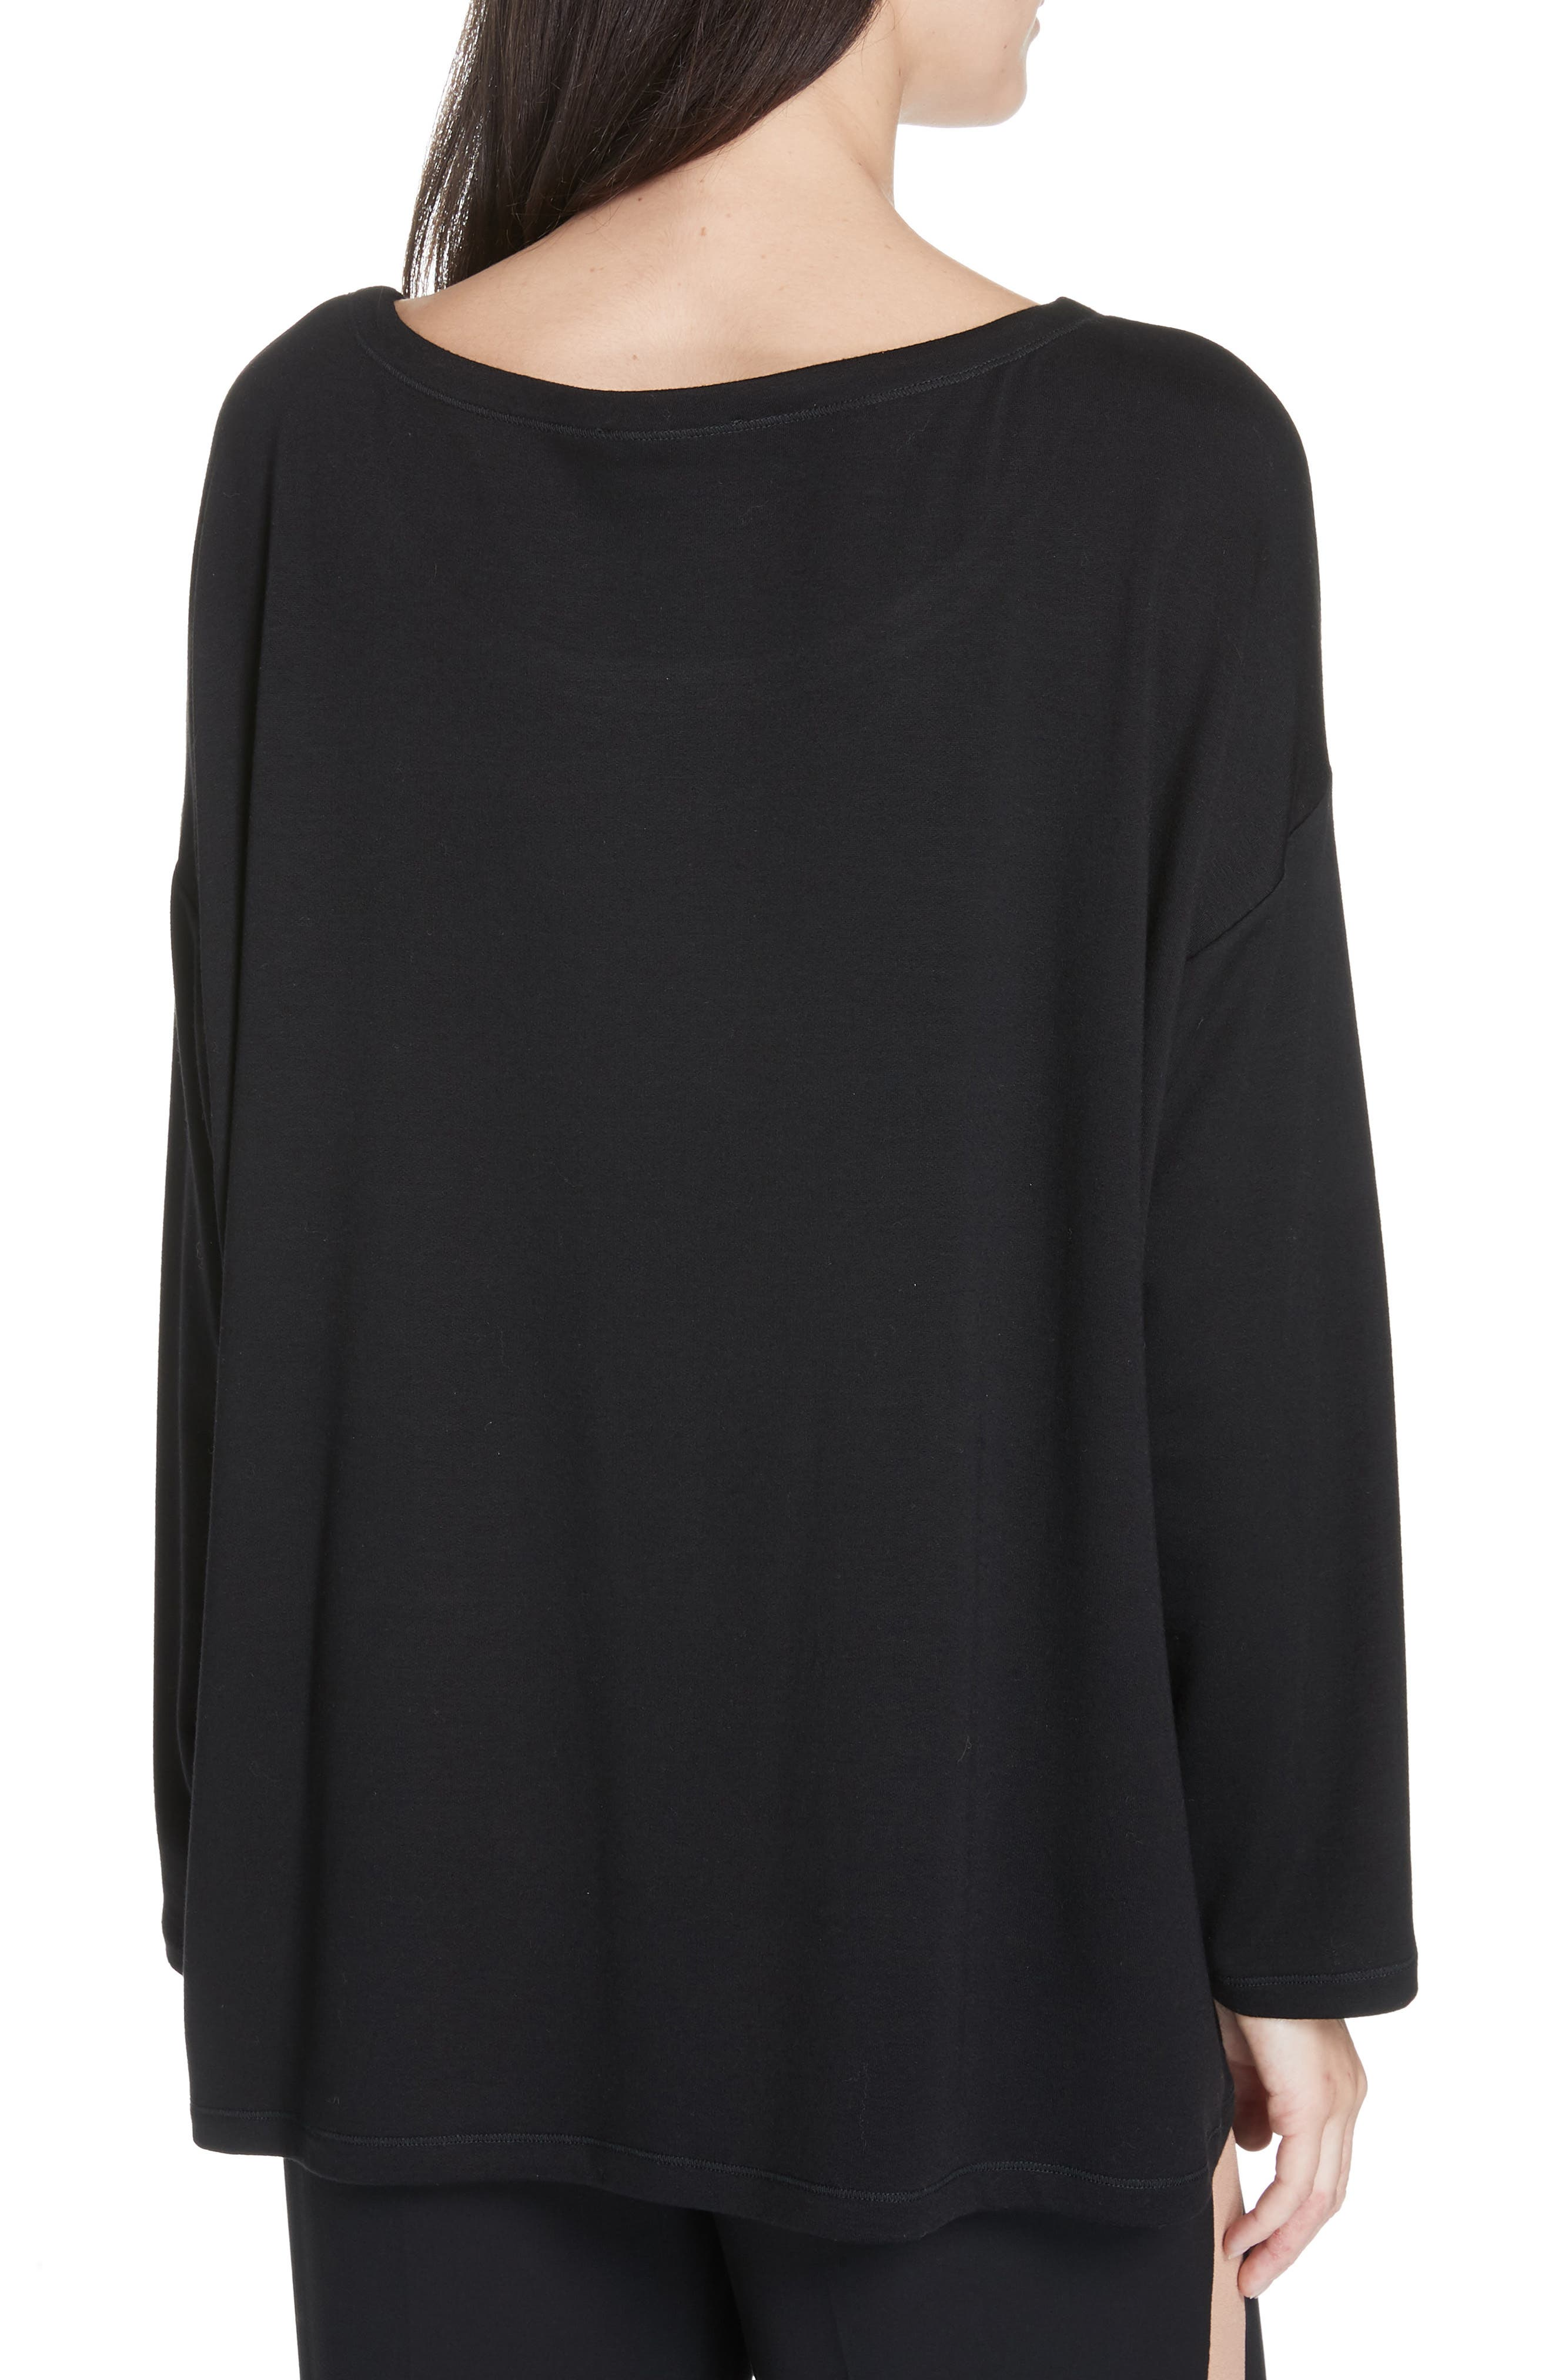 EILEEN FISHER, Stretch Terry Top, Alternate thumbnail 2, color, 001